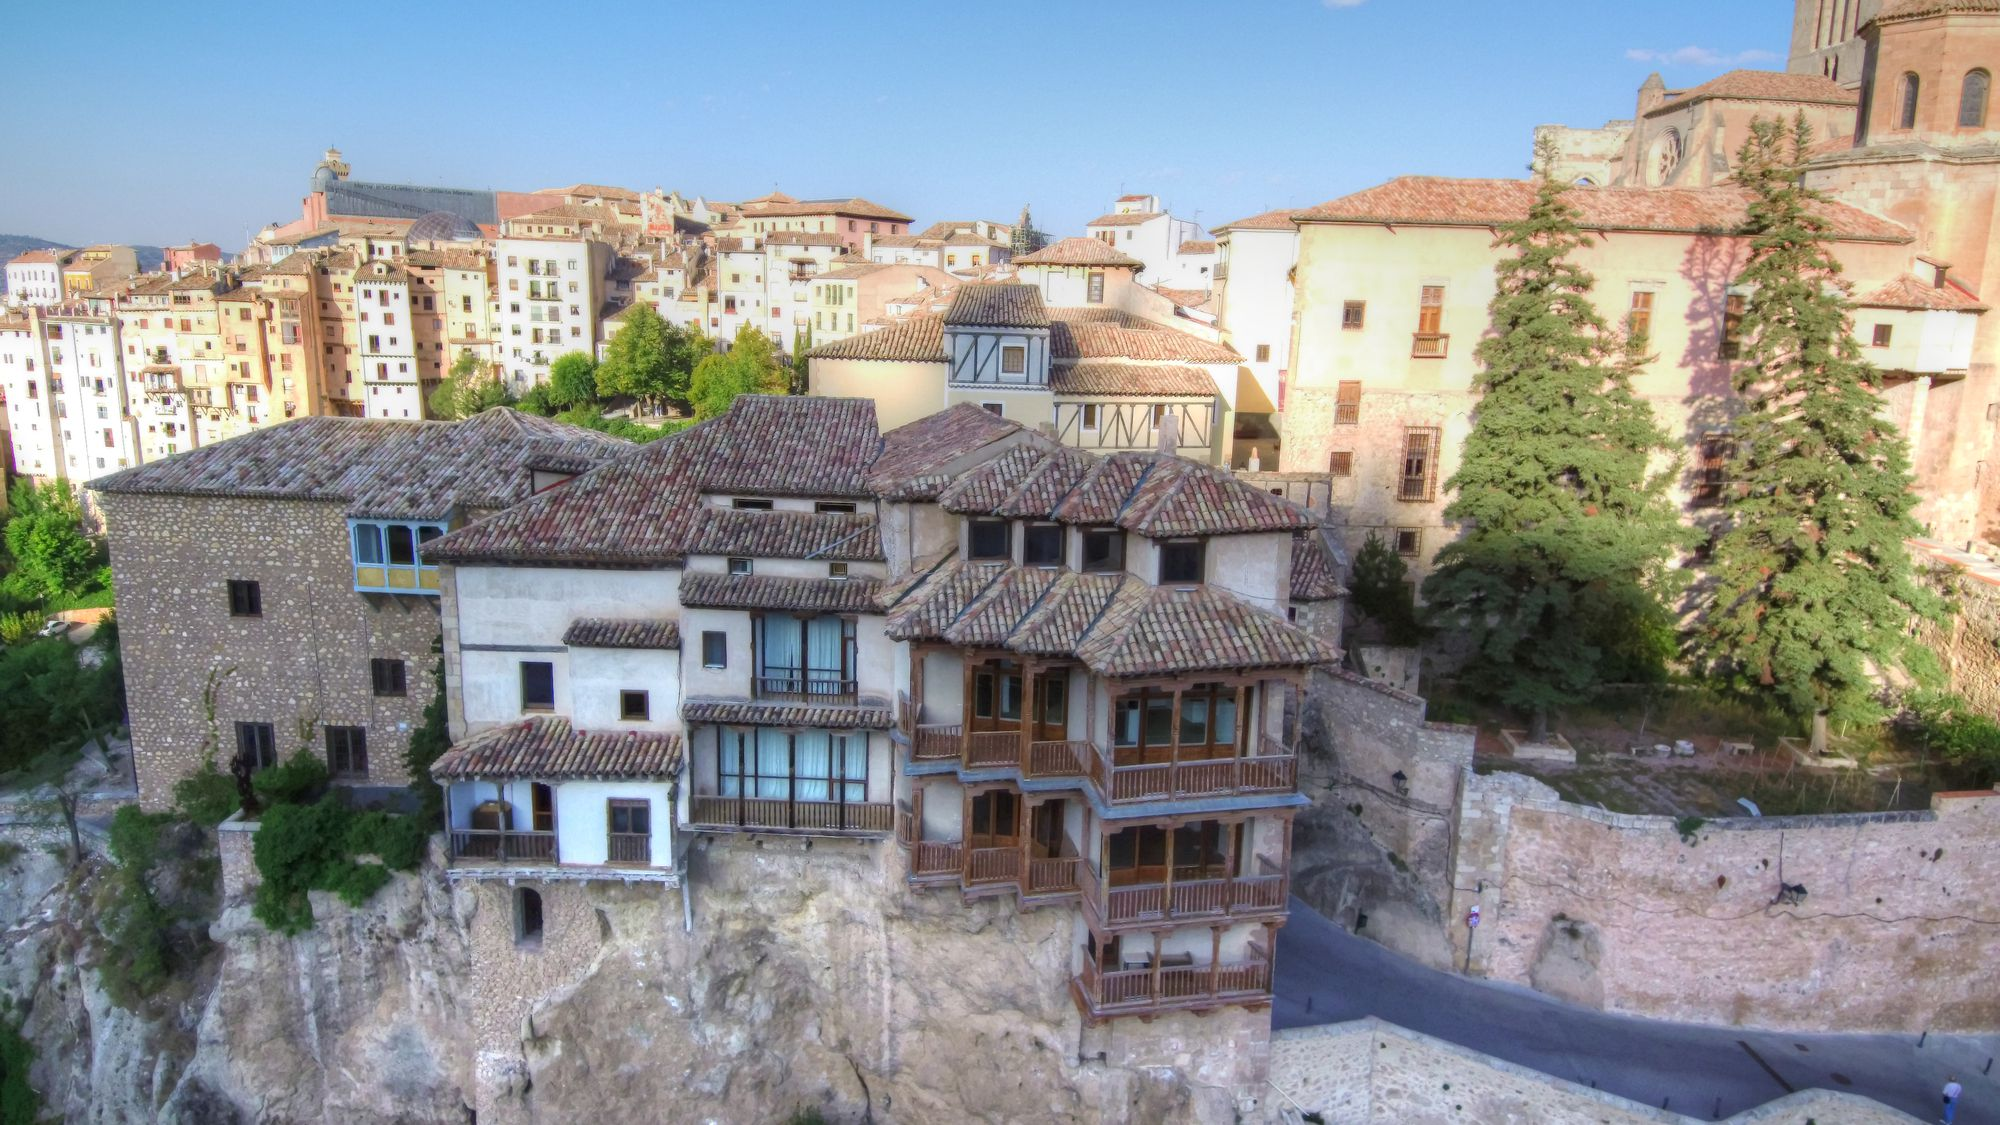 How To Get From Madrid To Cuenca